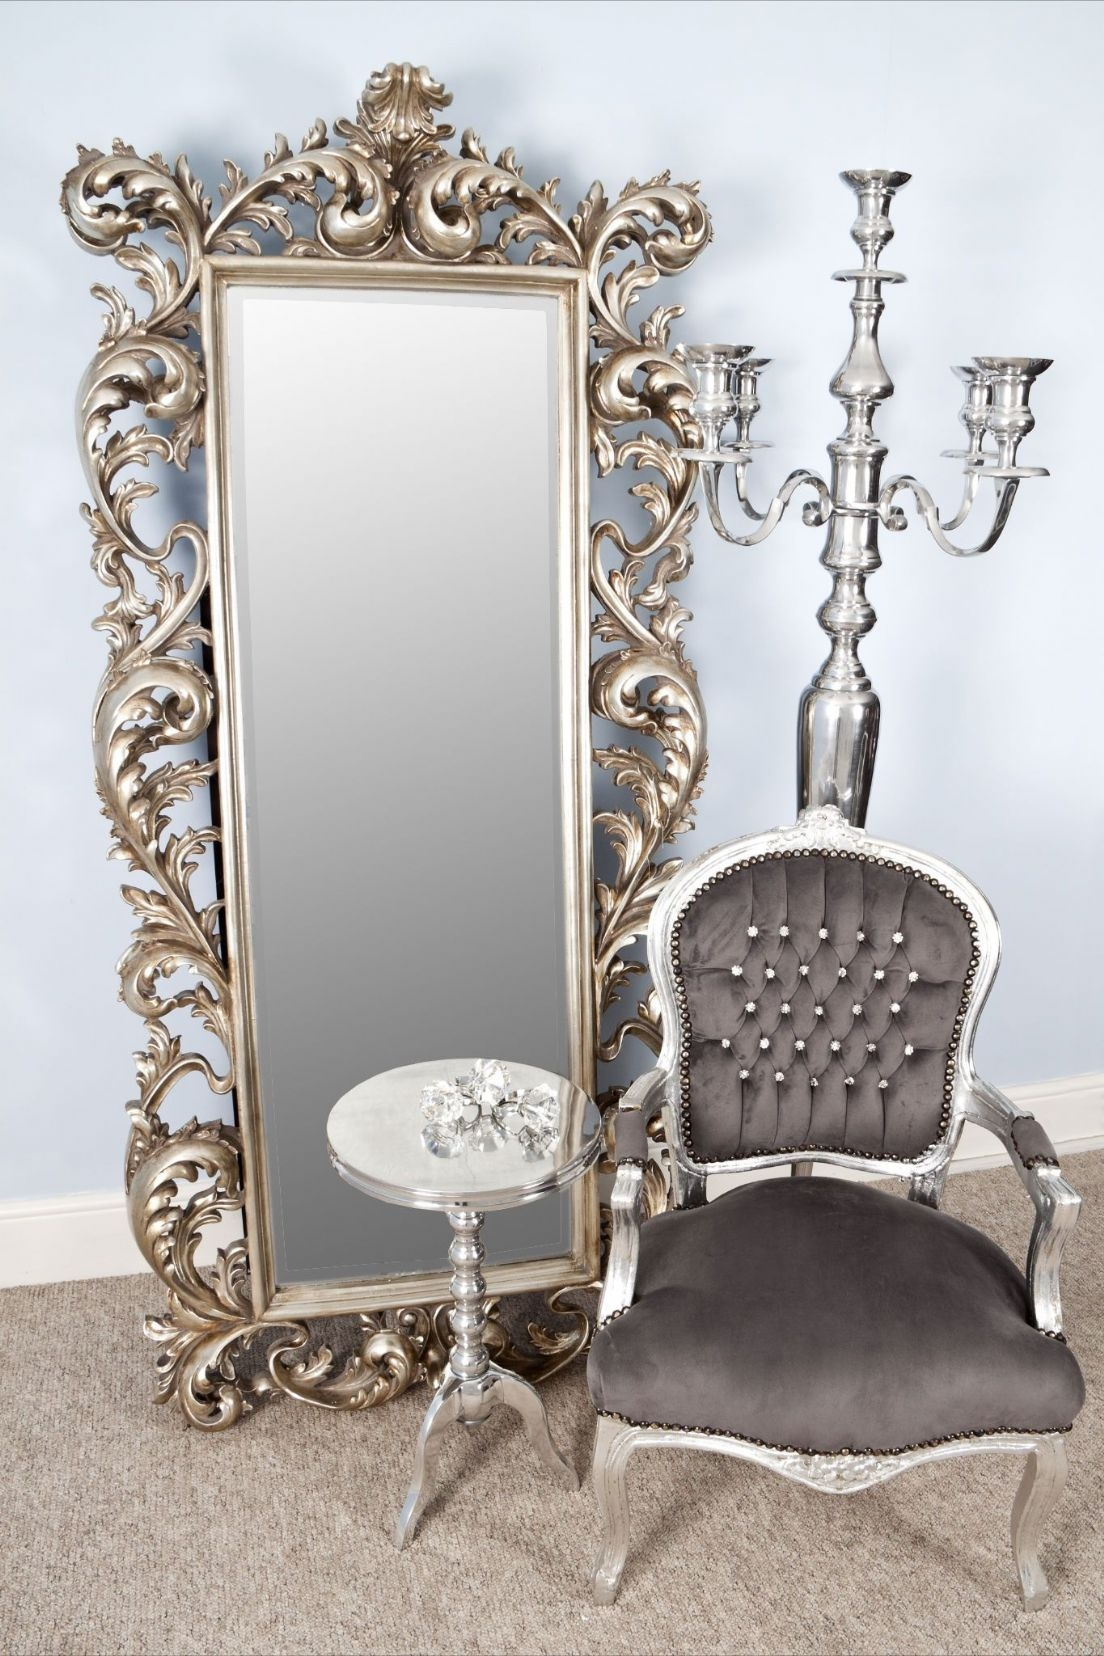 Bedroom Appealing Oversized Mirrors For Home Decoration Ideas Pertaining To Large Antique Mirror For Sale (Image 3 of 15)